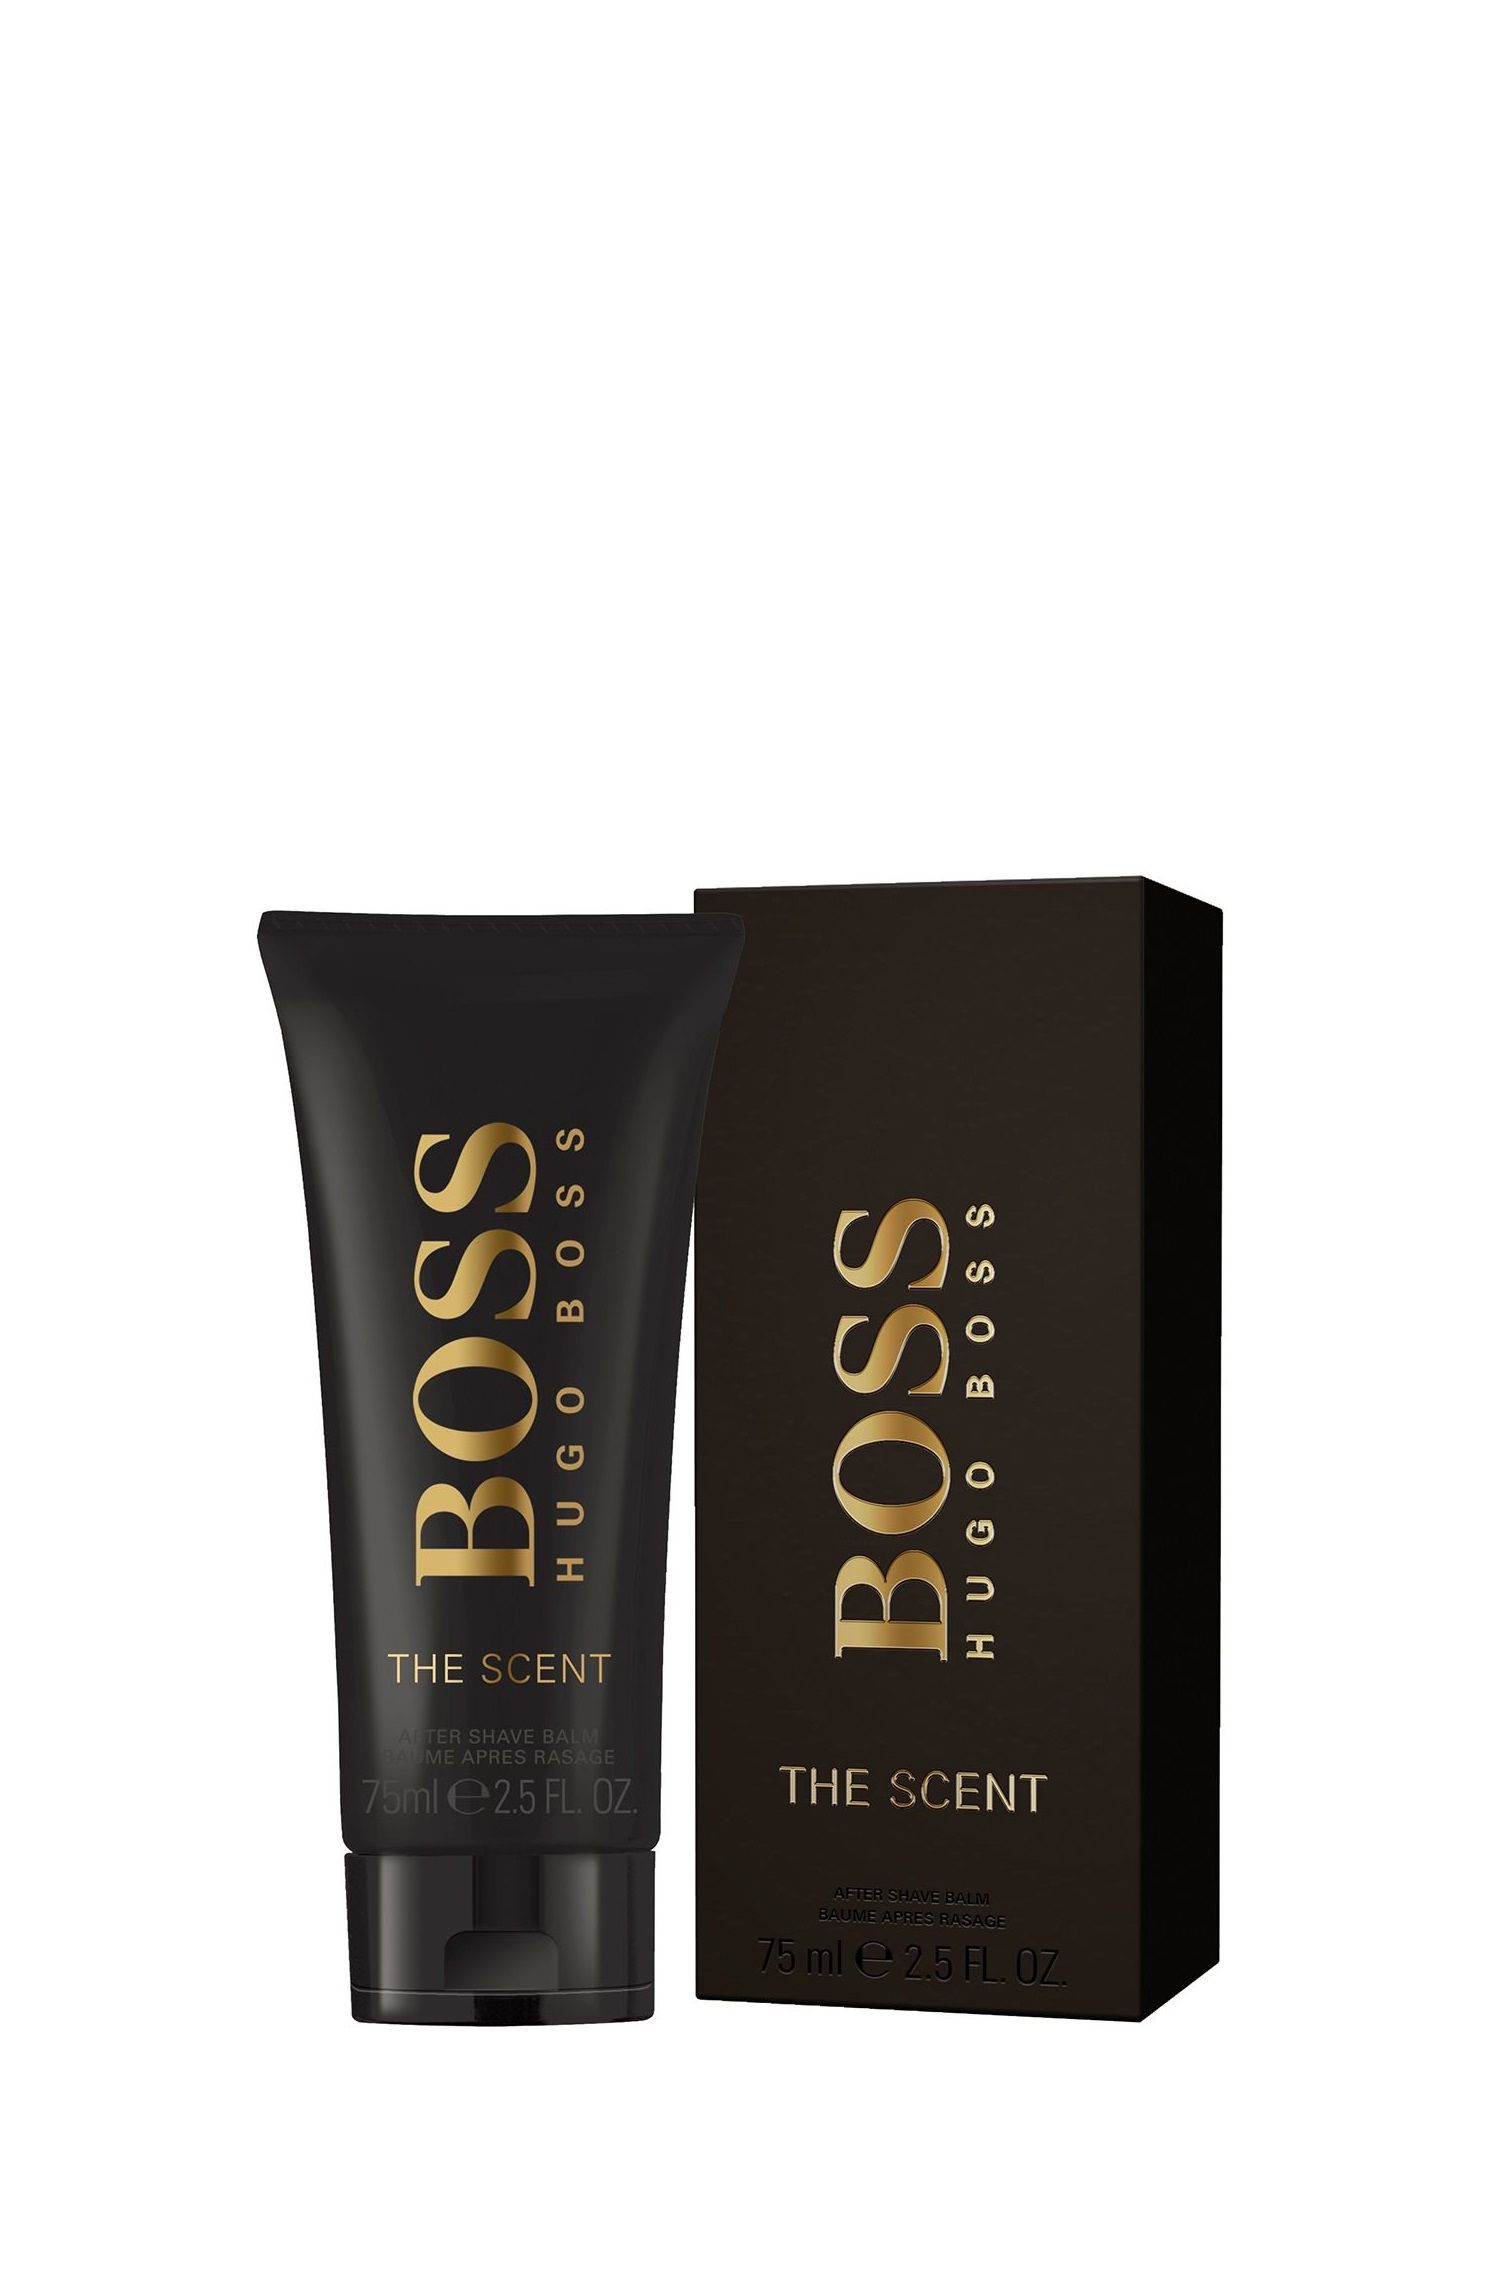 BOSS The Scent Aftershave-Balsam 75 ml, Assorted-Pre-Pack